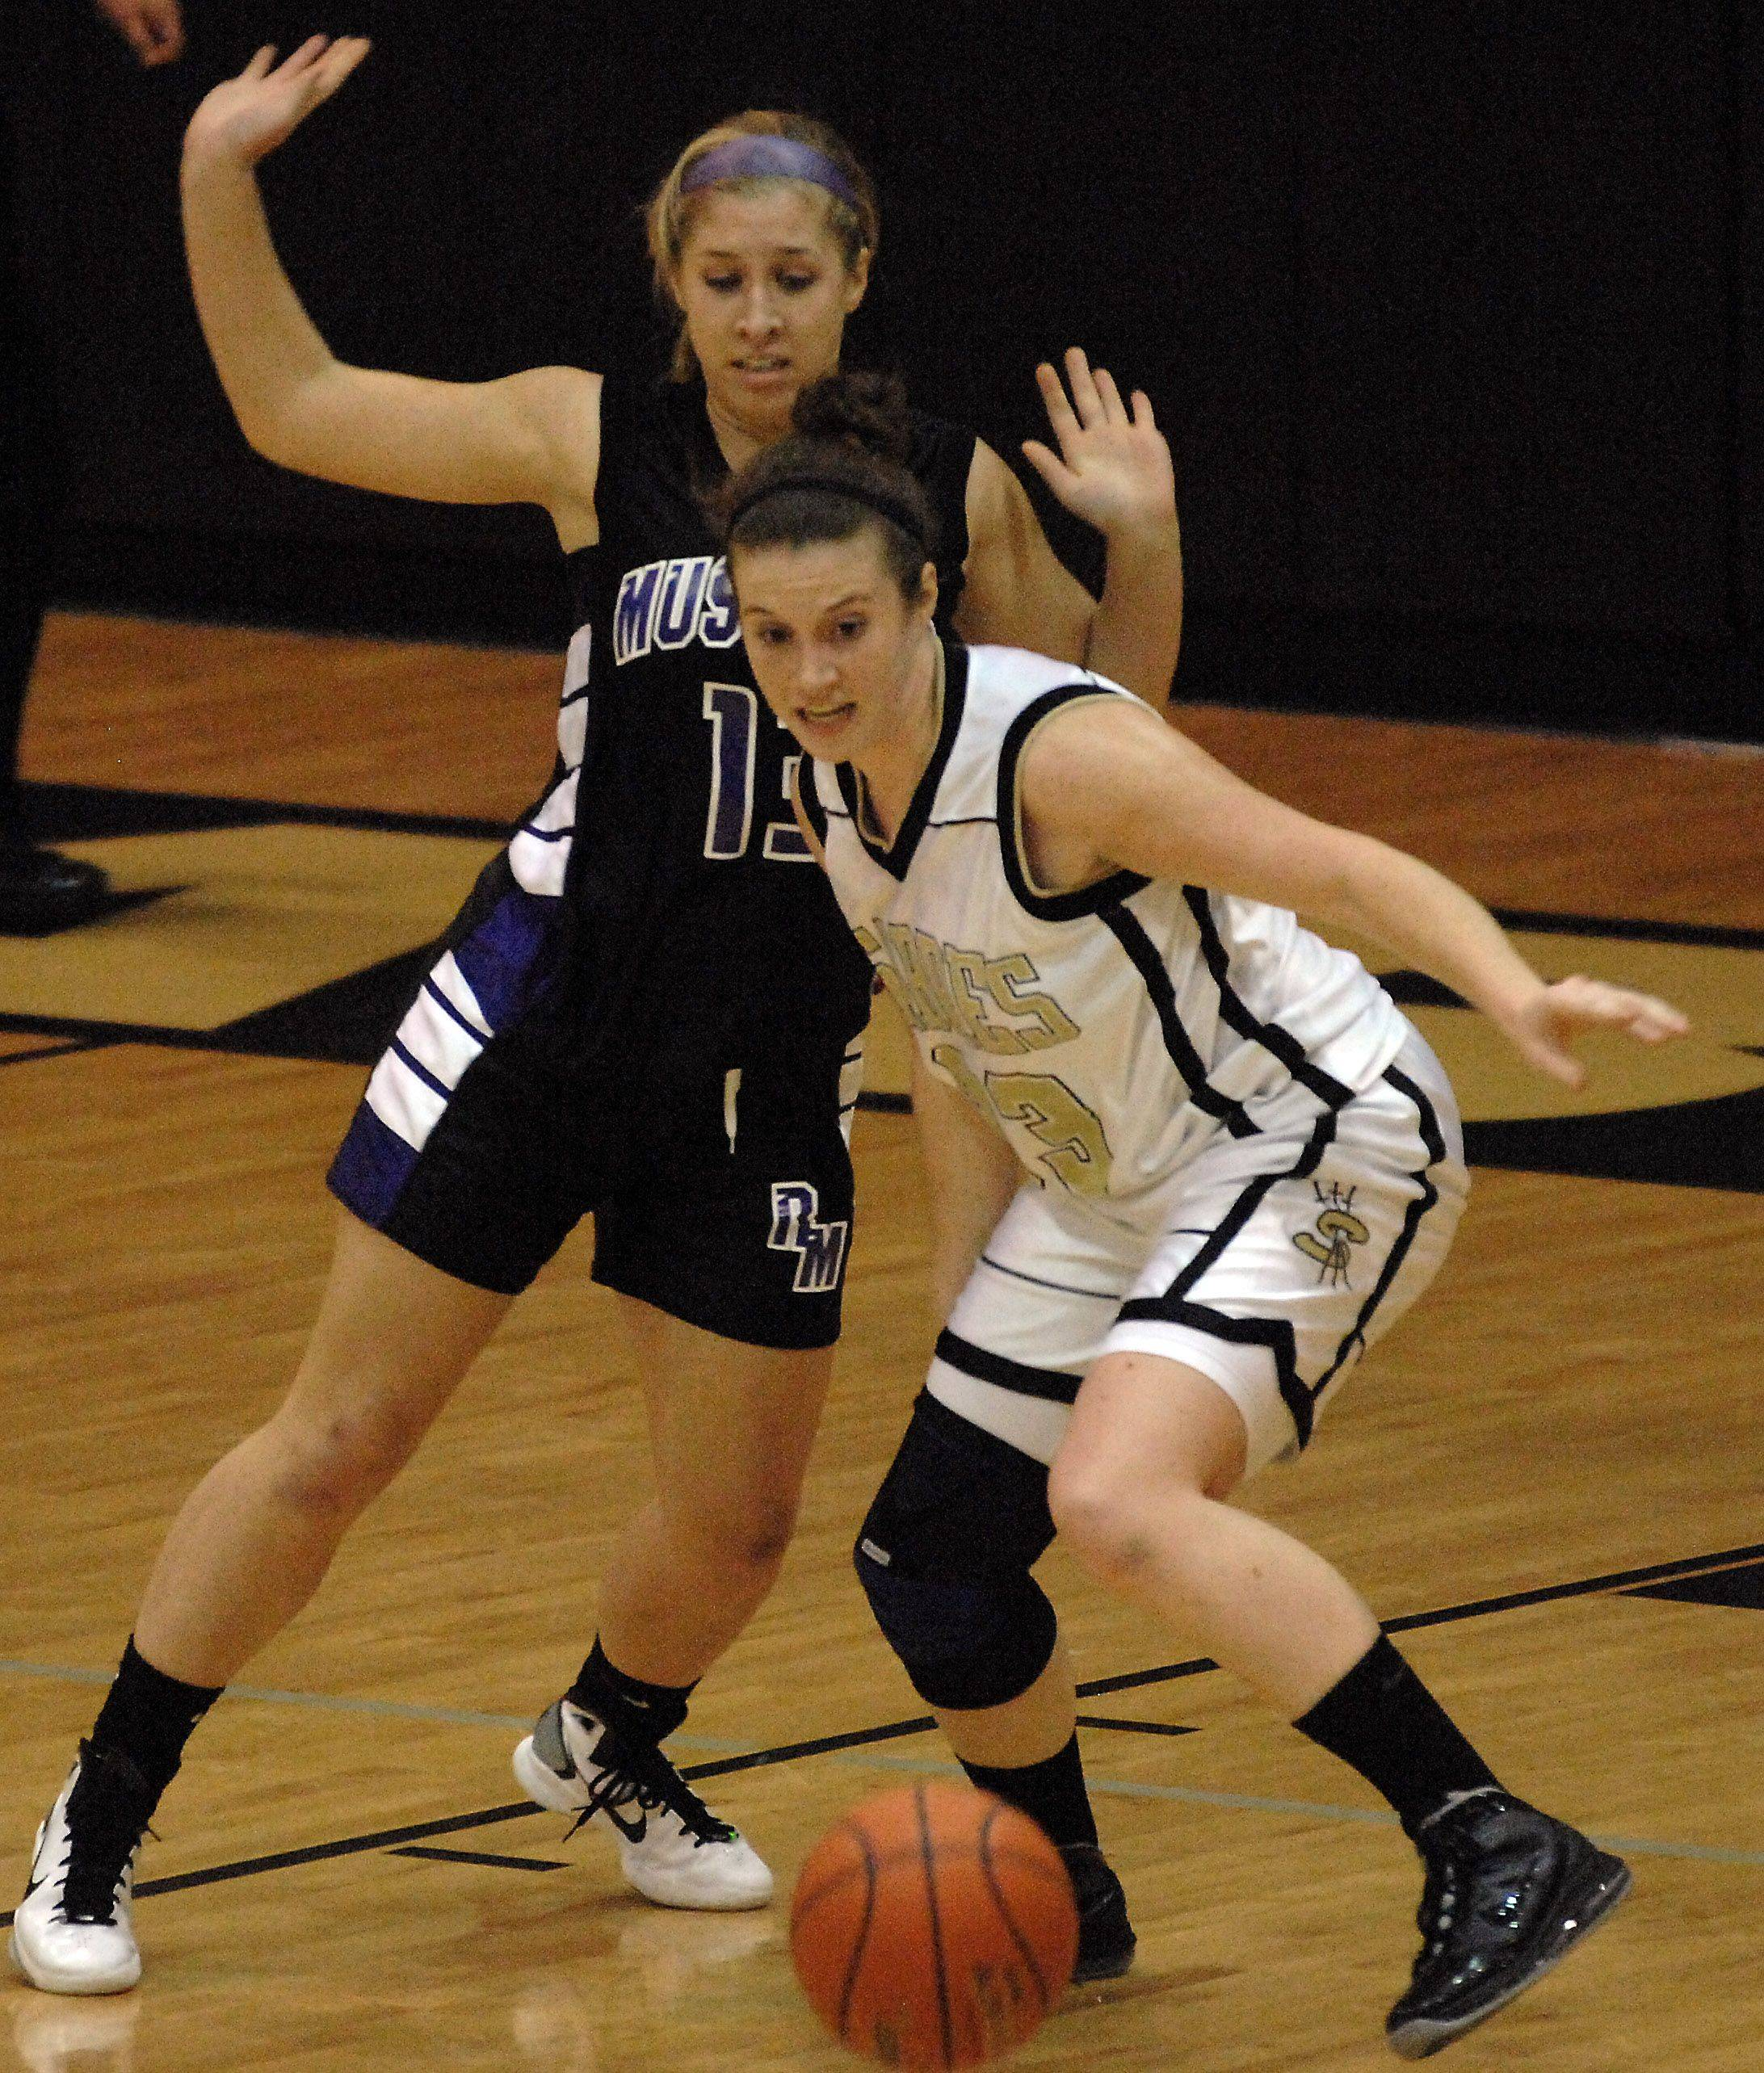 Streamwood's Emma Schmidt moves to collect a loose ball as Rolling Meadows' Josie Suchecki looks on in the first half.